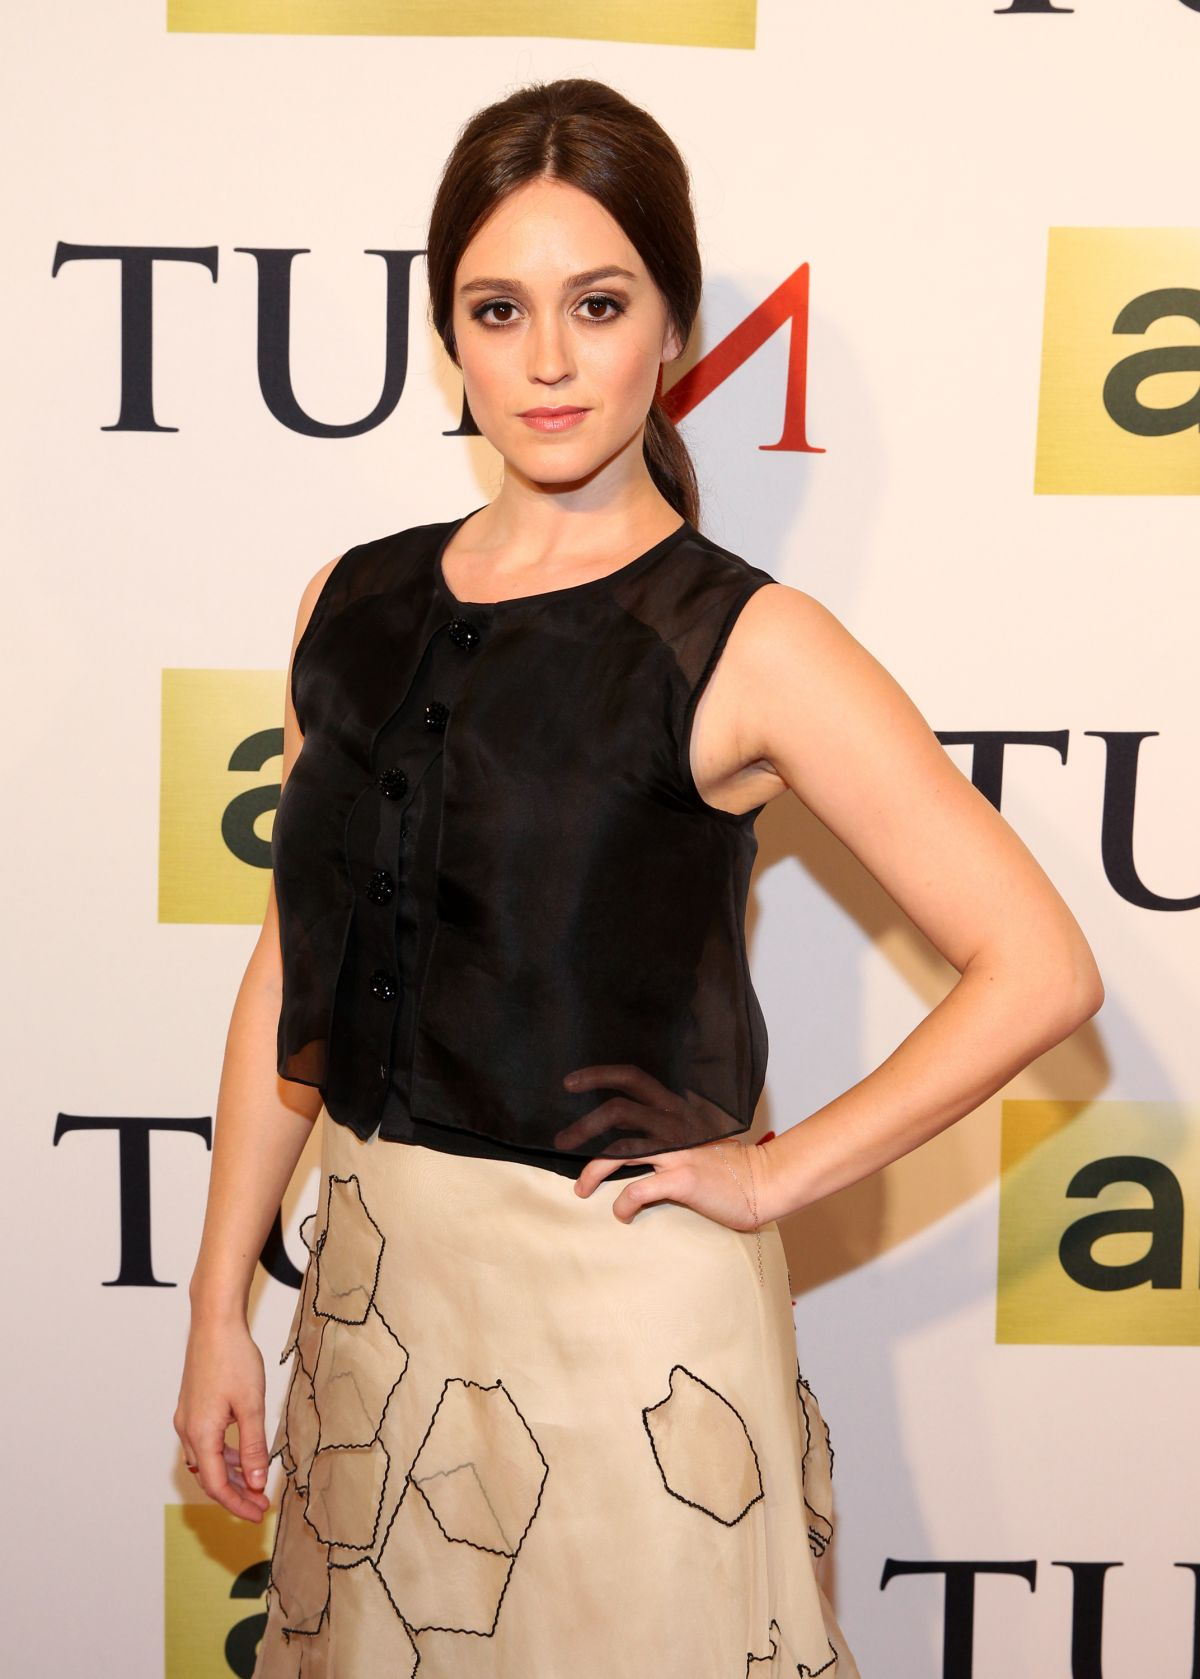 HEATHER LIND at Turn Serier Premiere